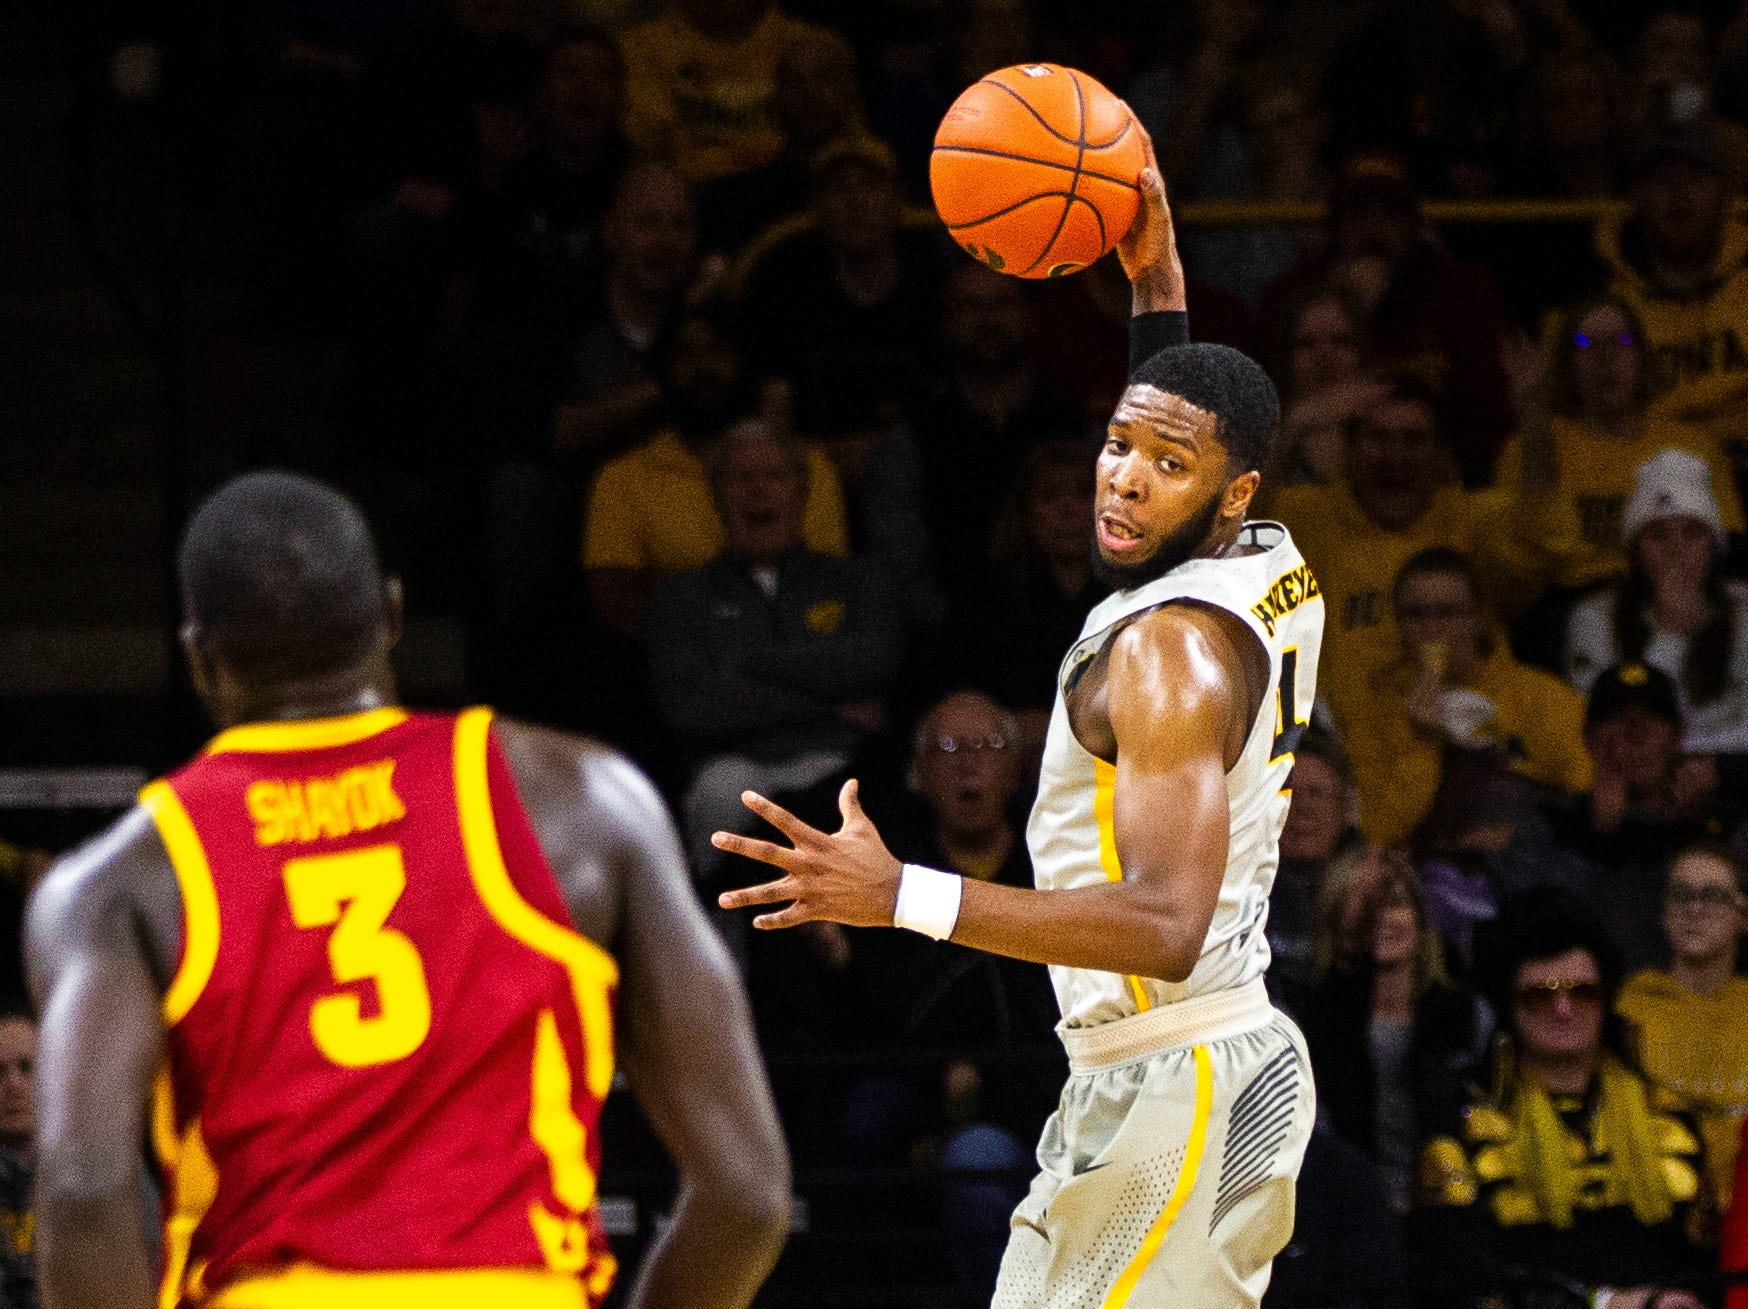 Iowa guard Isaiah Moss (4) grabs a rebound during a NCAA Cy-Hawk series men's basketball game on Thursday, Dec. 6, 2018, at Carver-Hawkeye Arena in Iowa City.